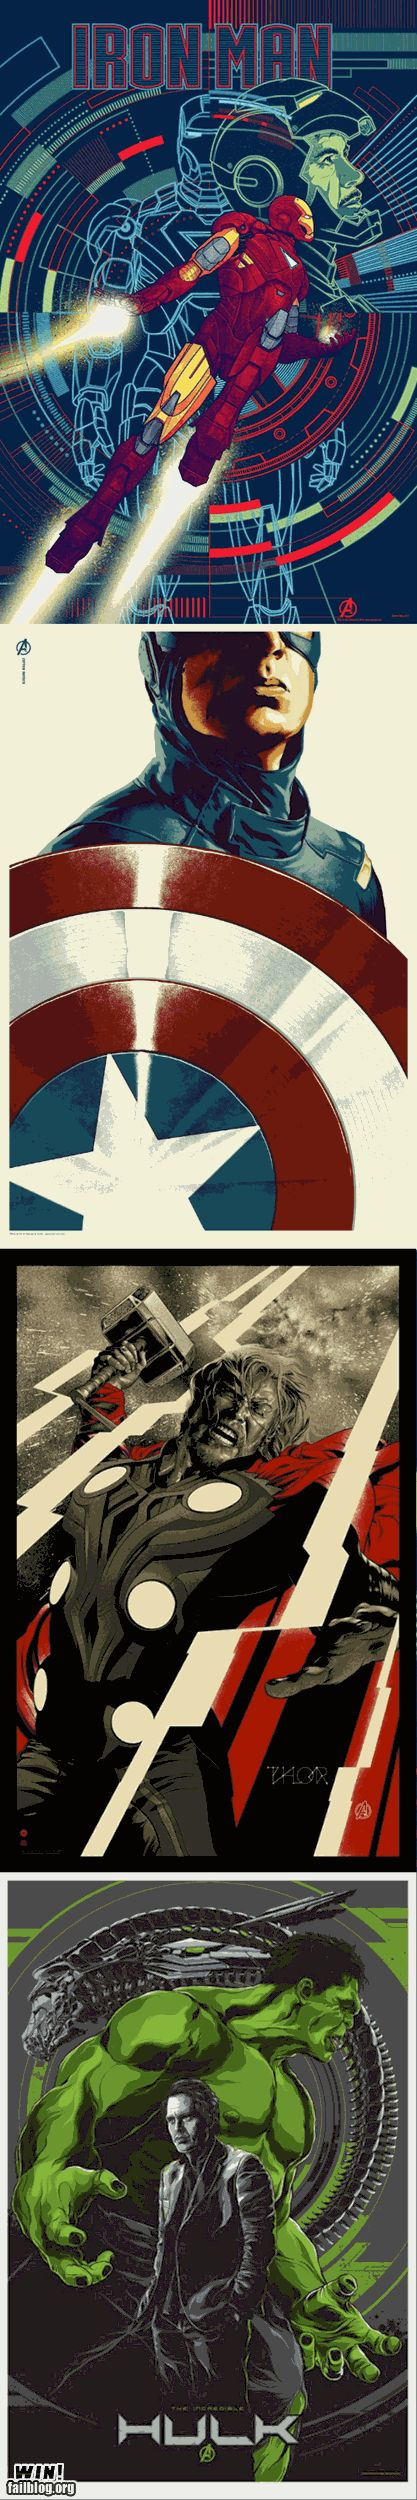 epic win photos - Avenger's Movie Poster Designs WIN